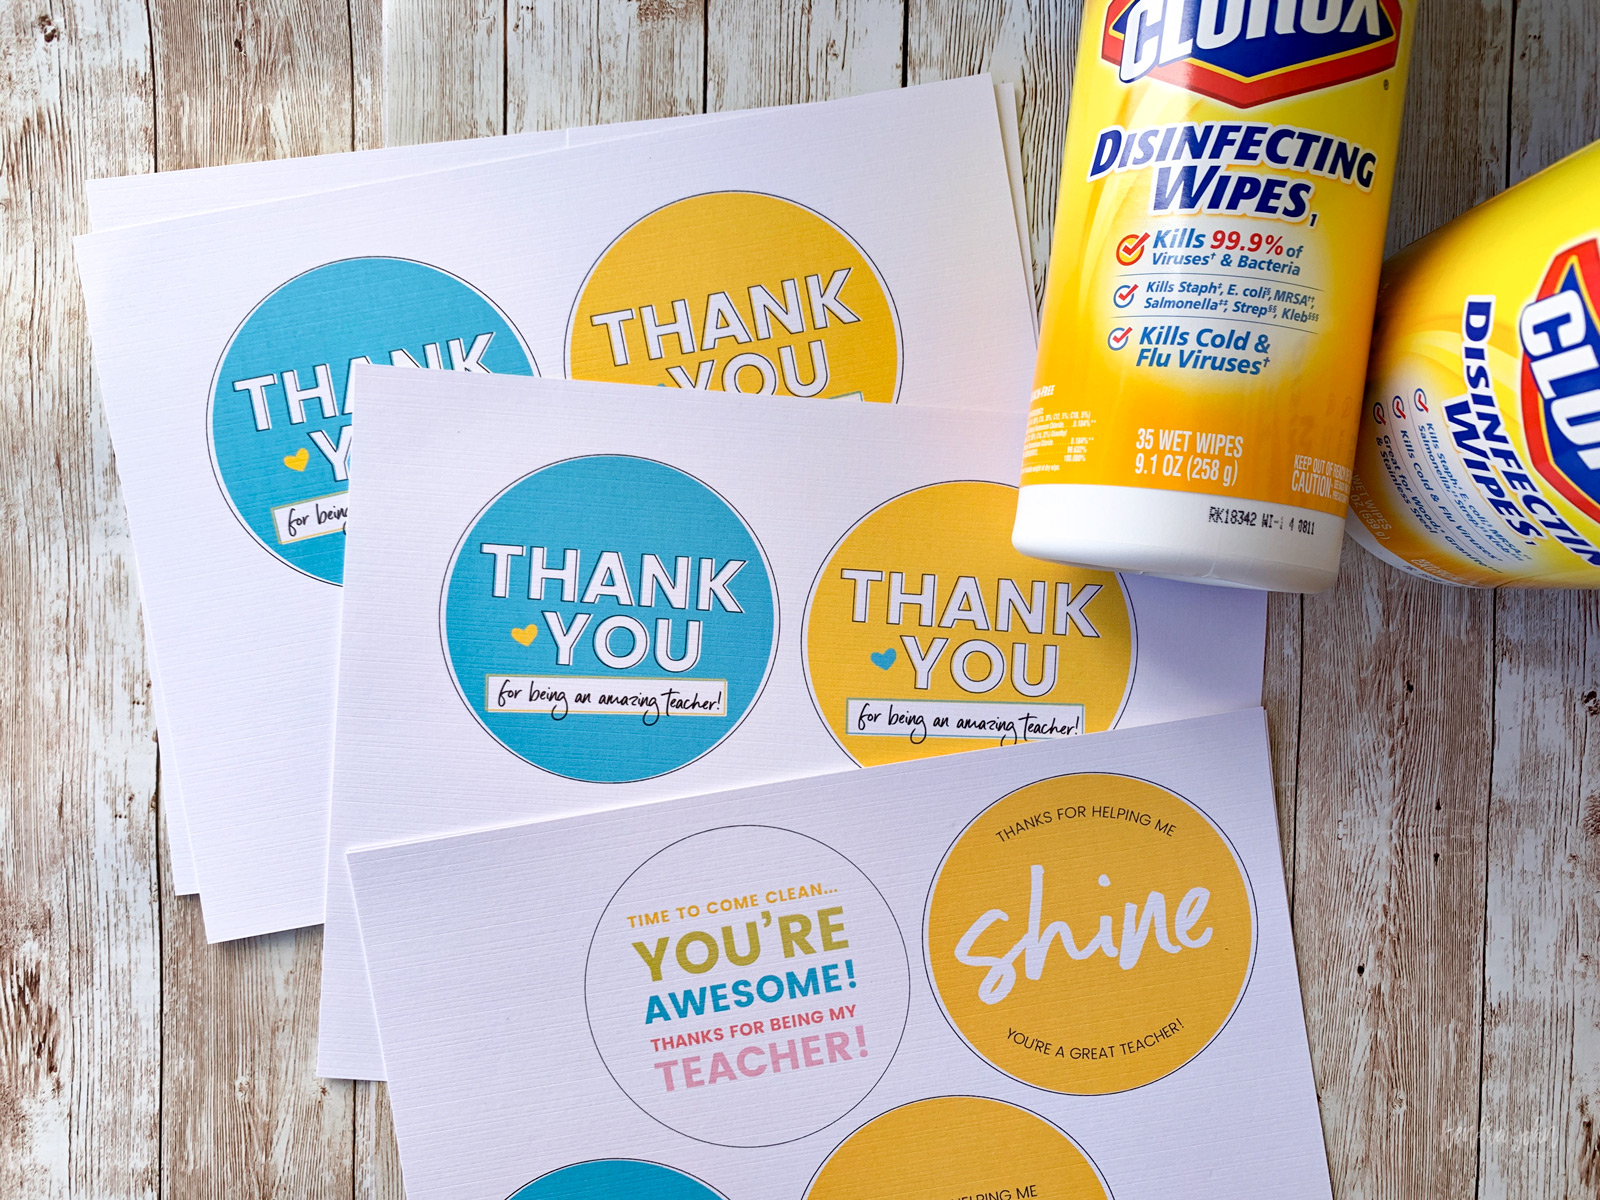 Printables for Disinfecting Wipes